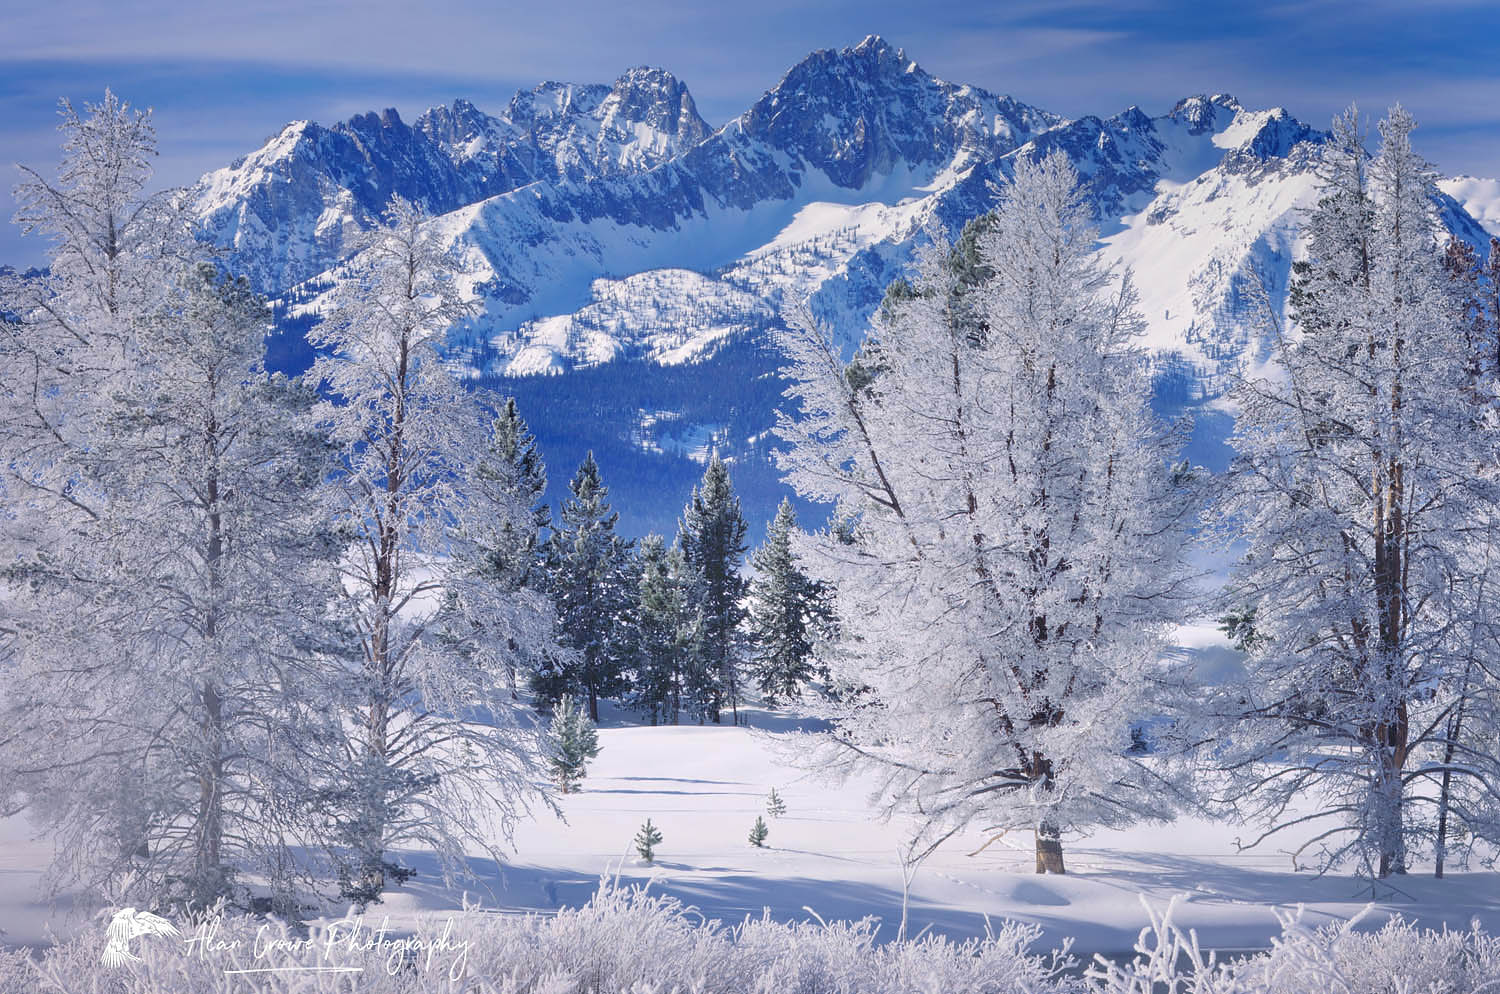 Sawtooth Mountains in winter, Idaho